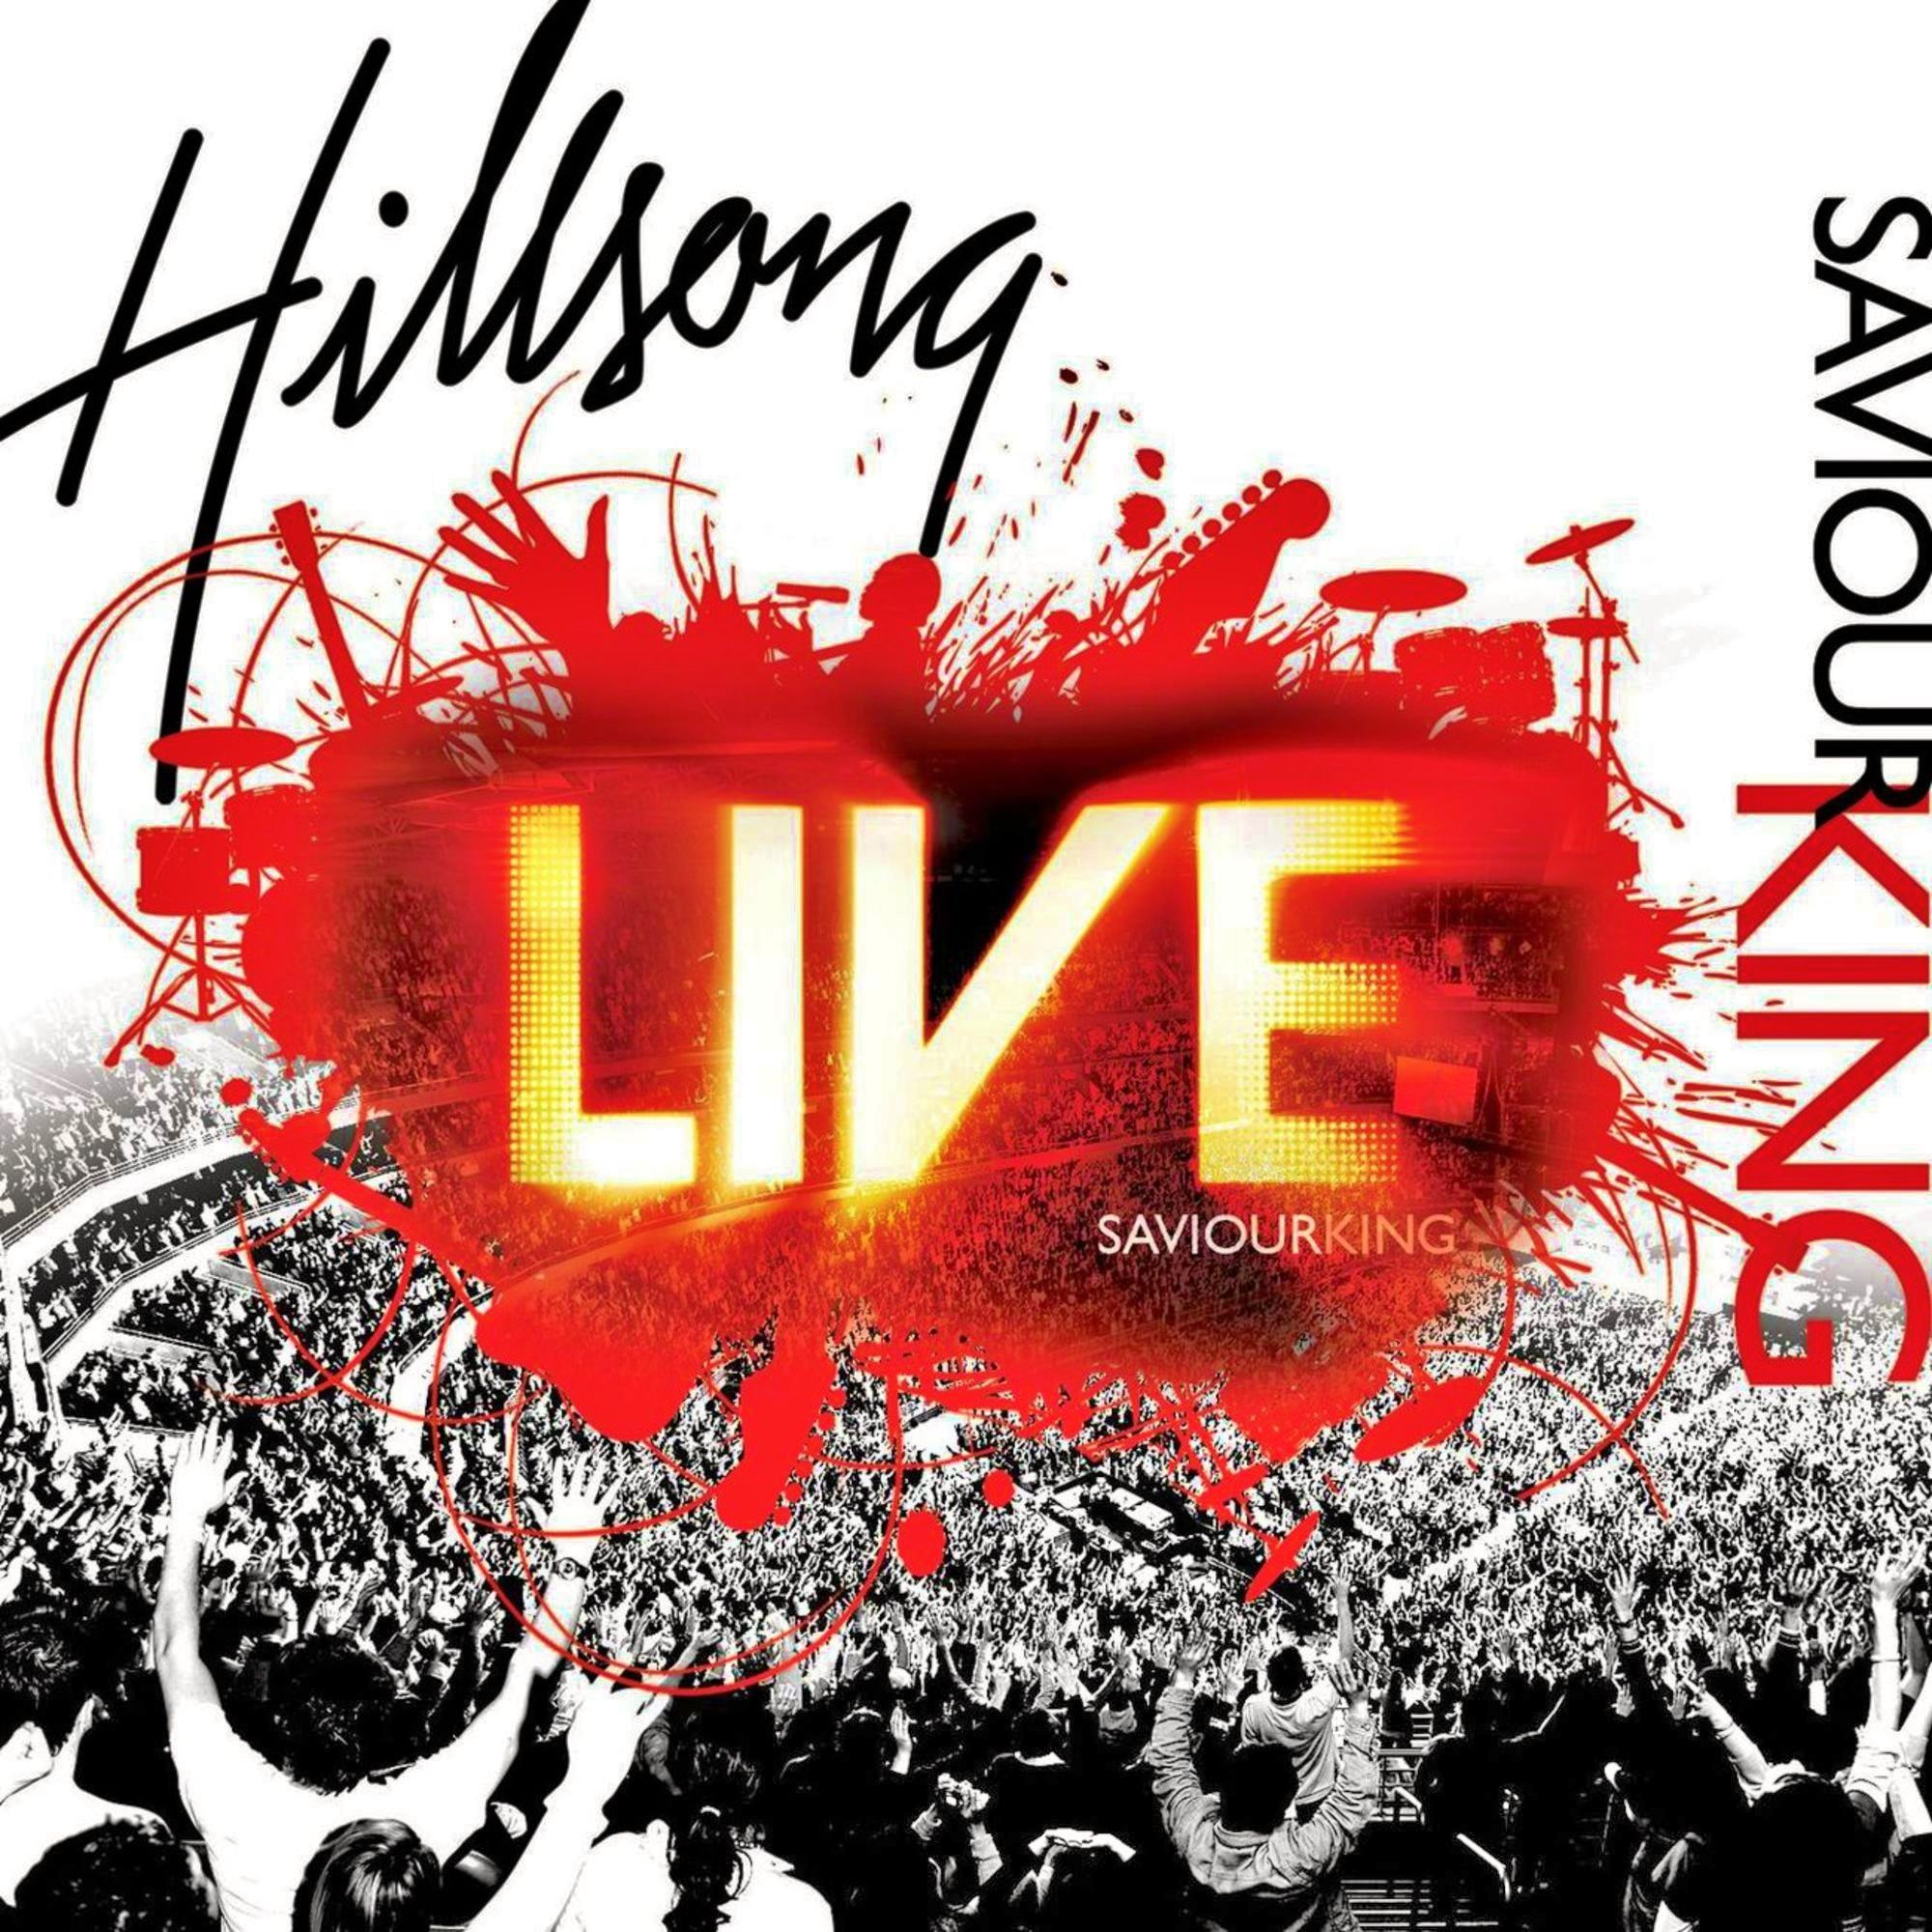 Hillsong - Saviour King album cover